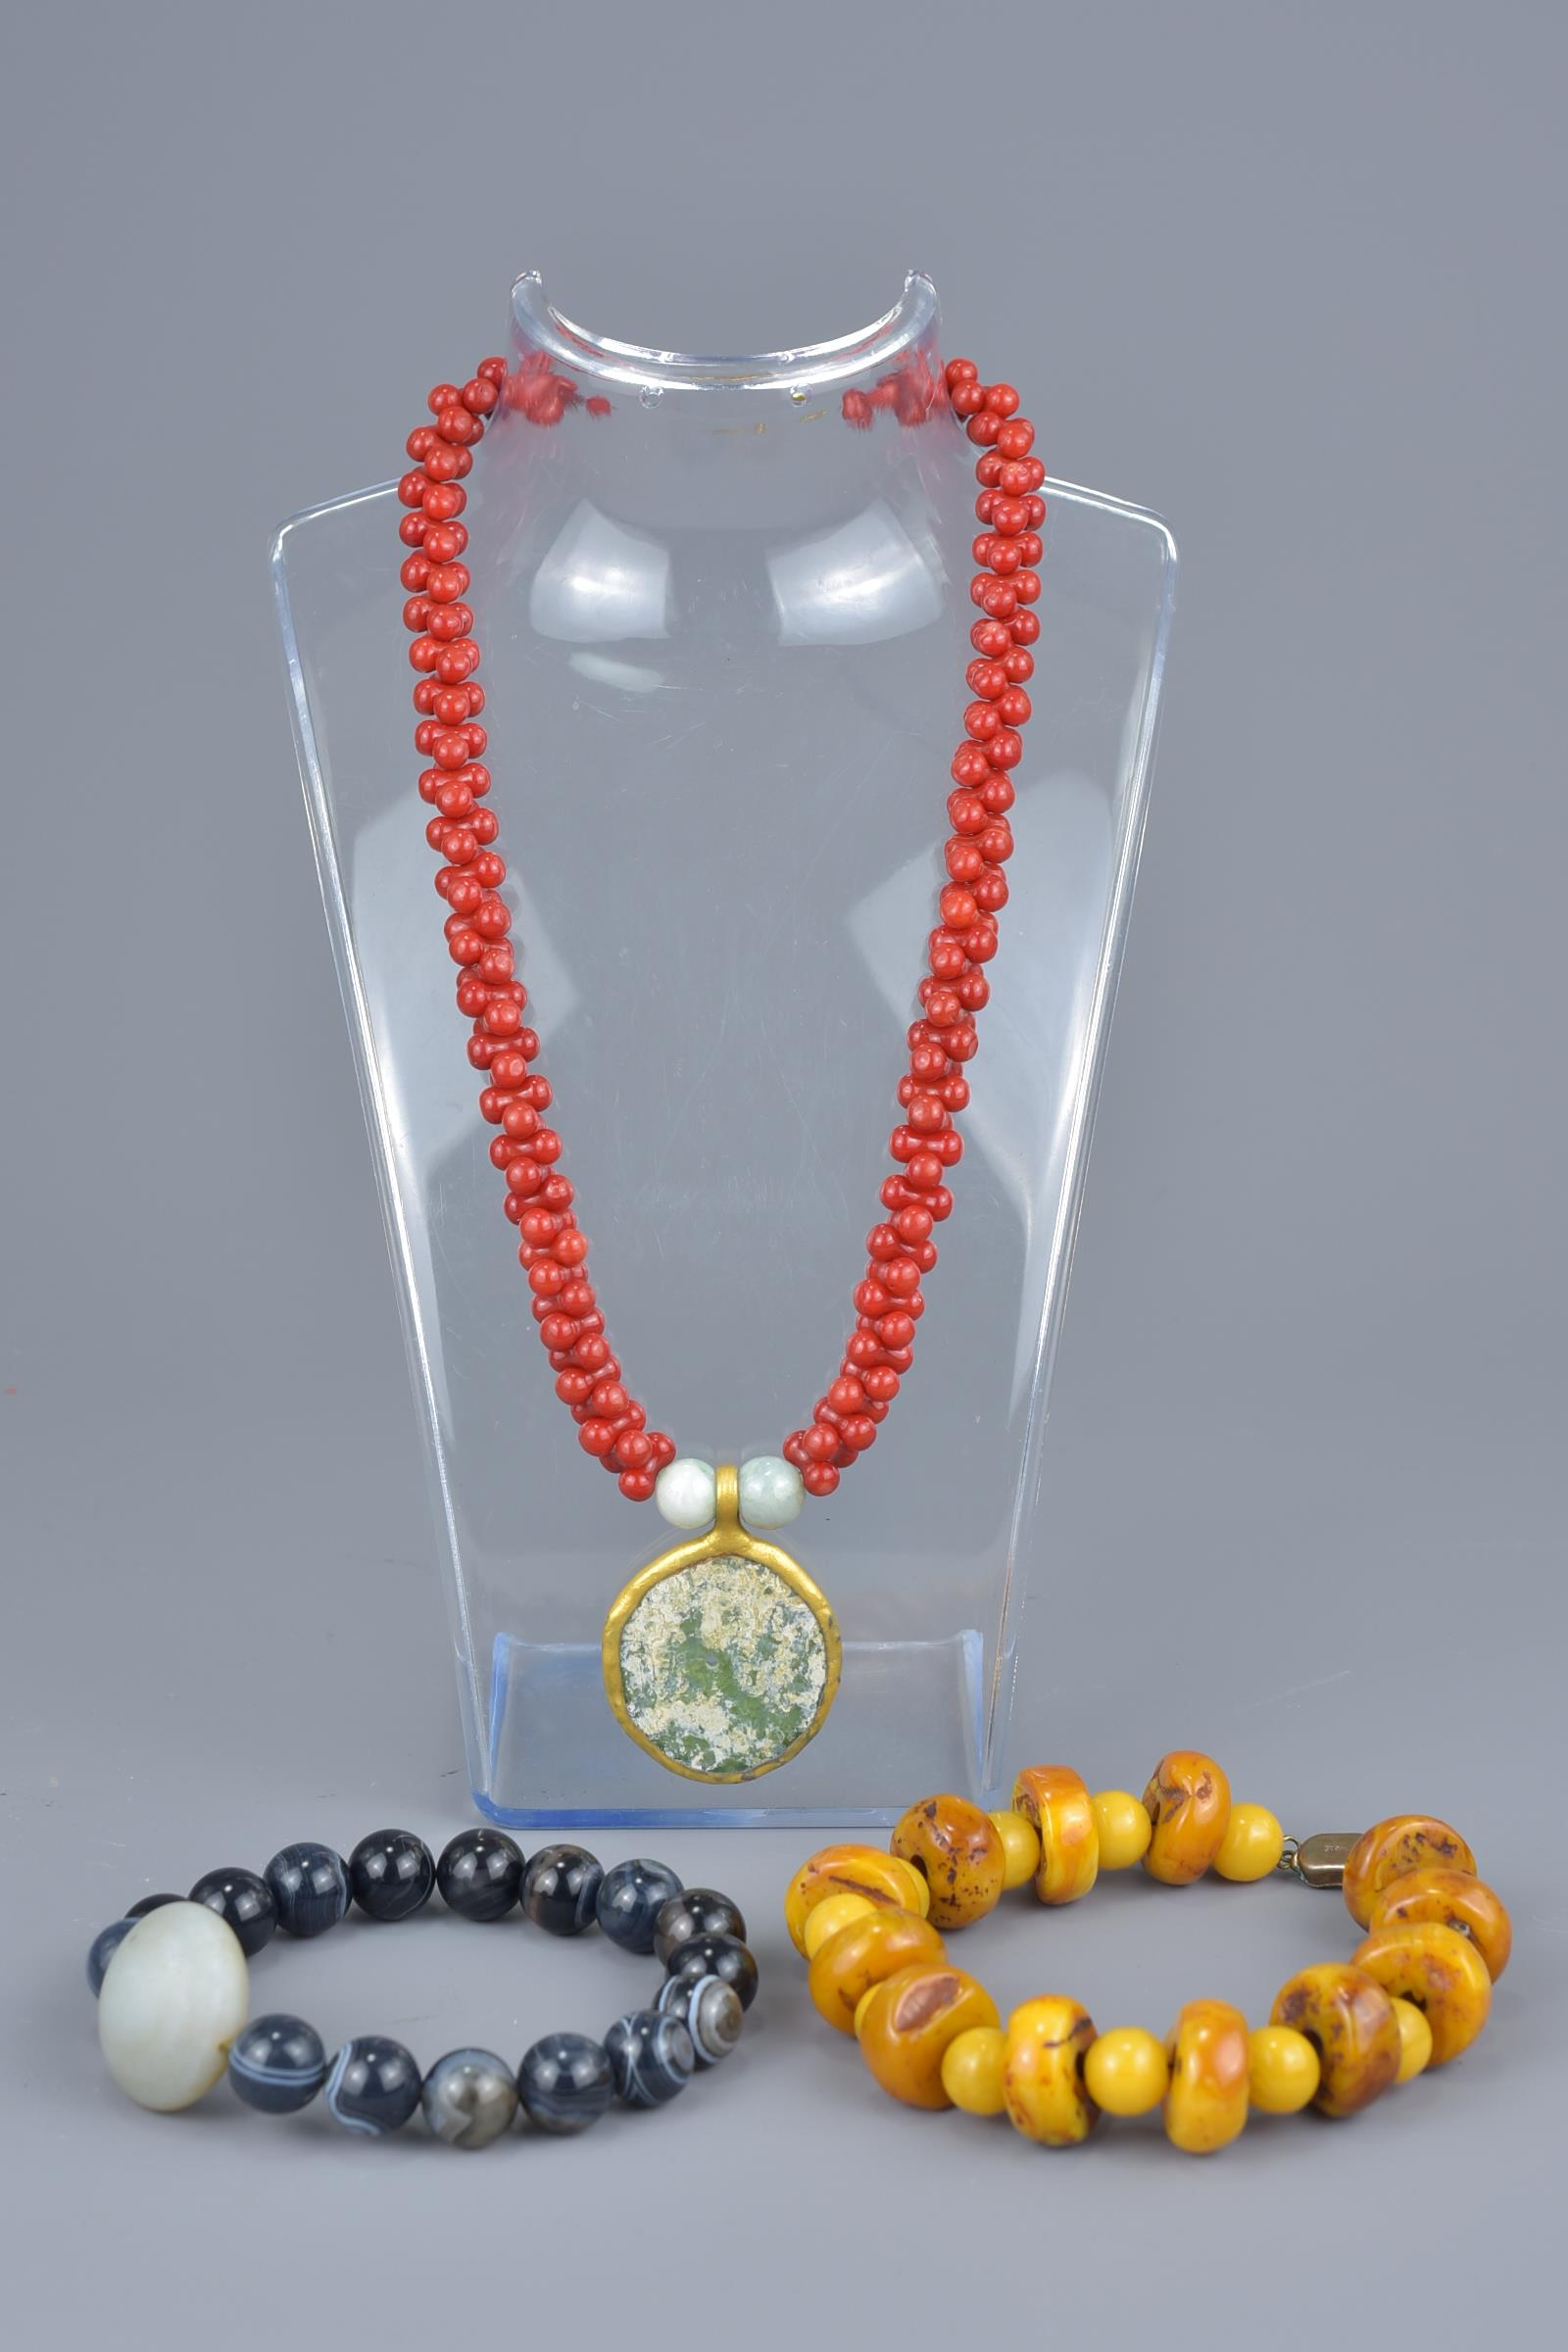 Lot 39 - One beaded necklace with glass pendant and two beaded bracelets.